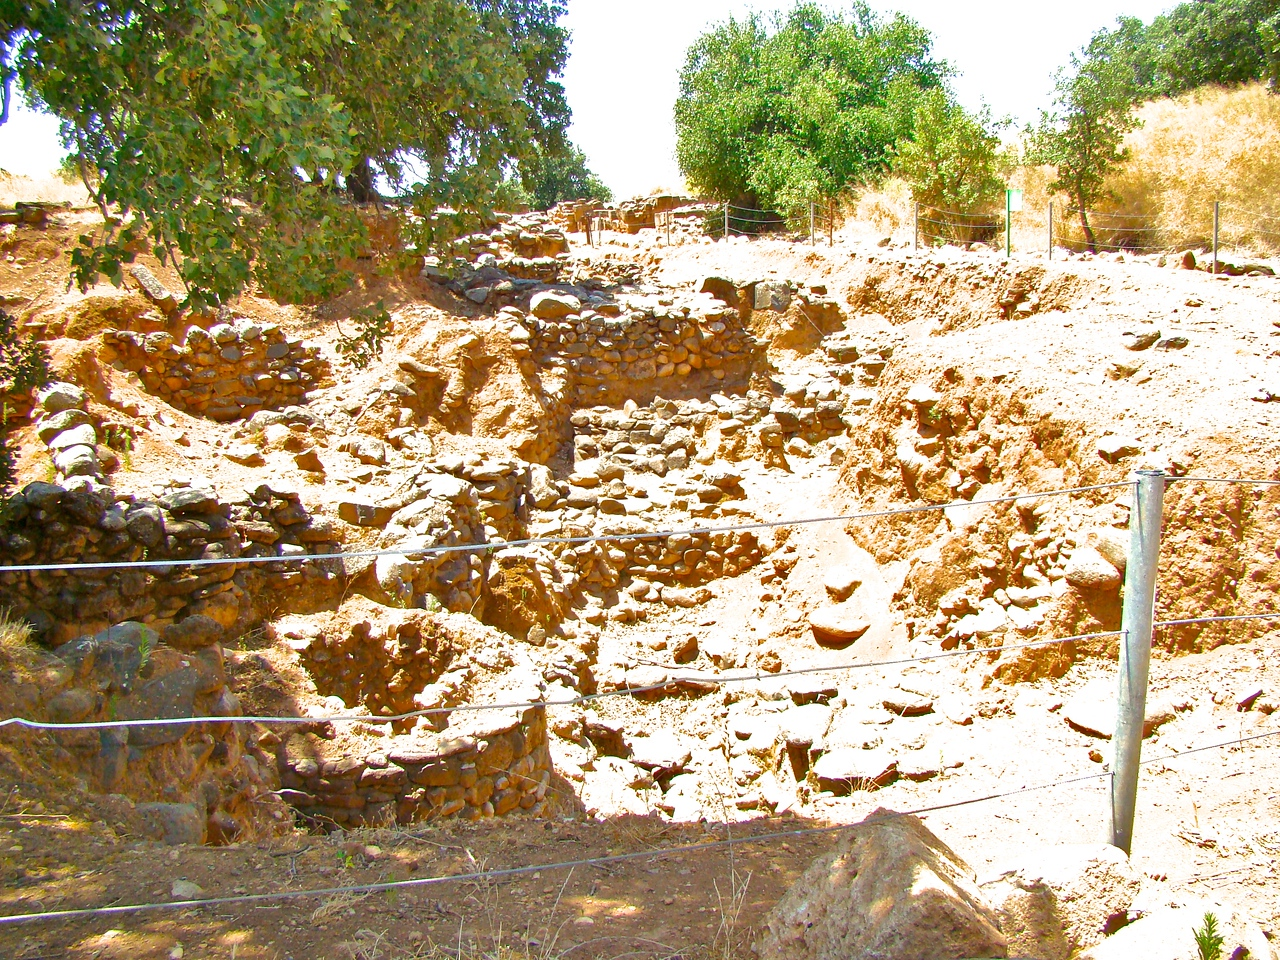 Tel Dan-Multiple Layers of Excavation, more for future excavations (1)